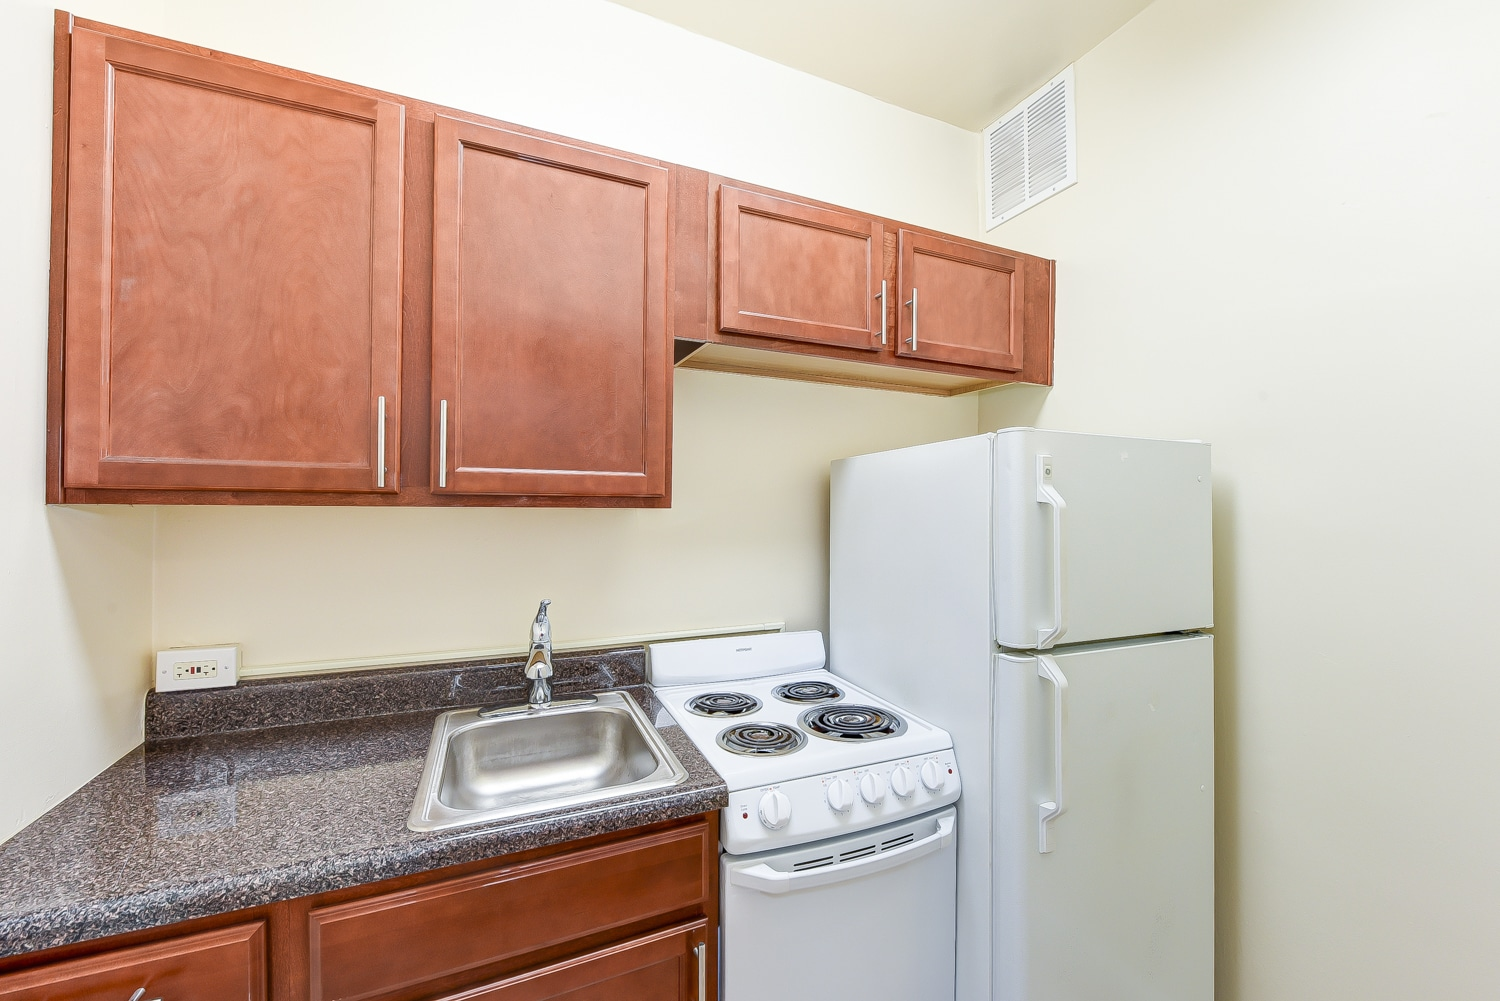 Eddystone-Kitchen-Appliances-DC-Apartment-Rental | WC Smith